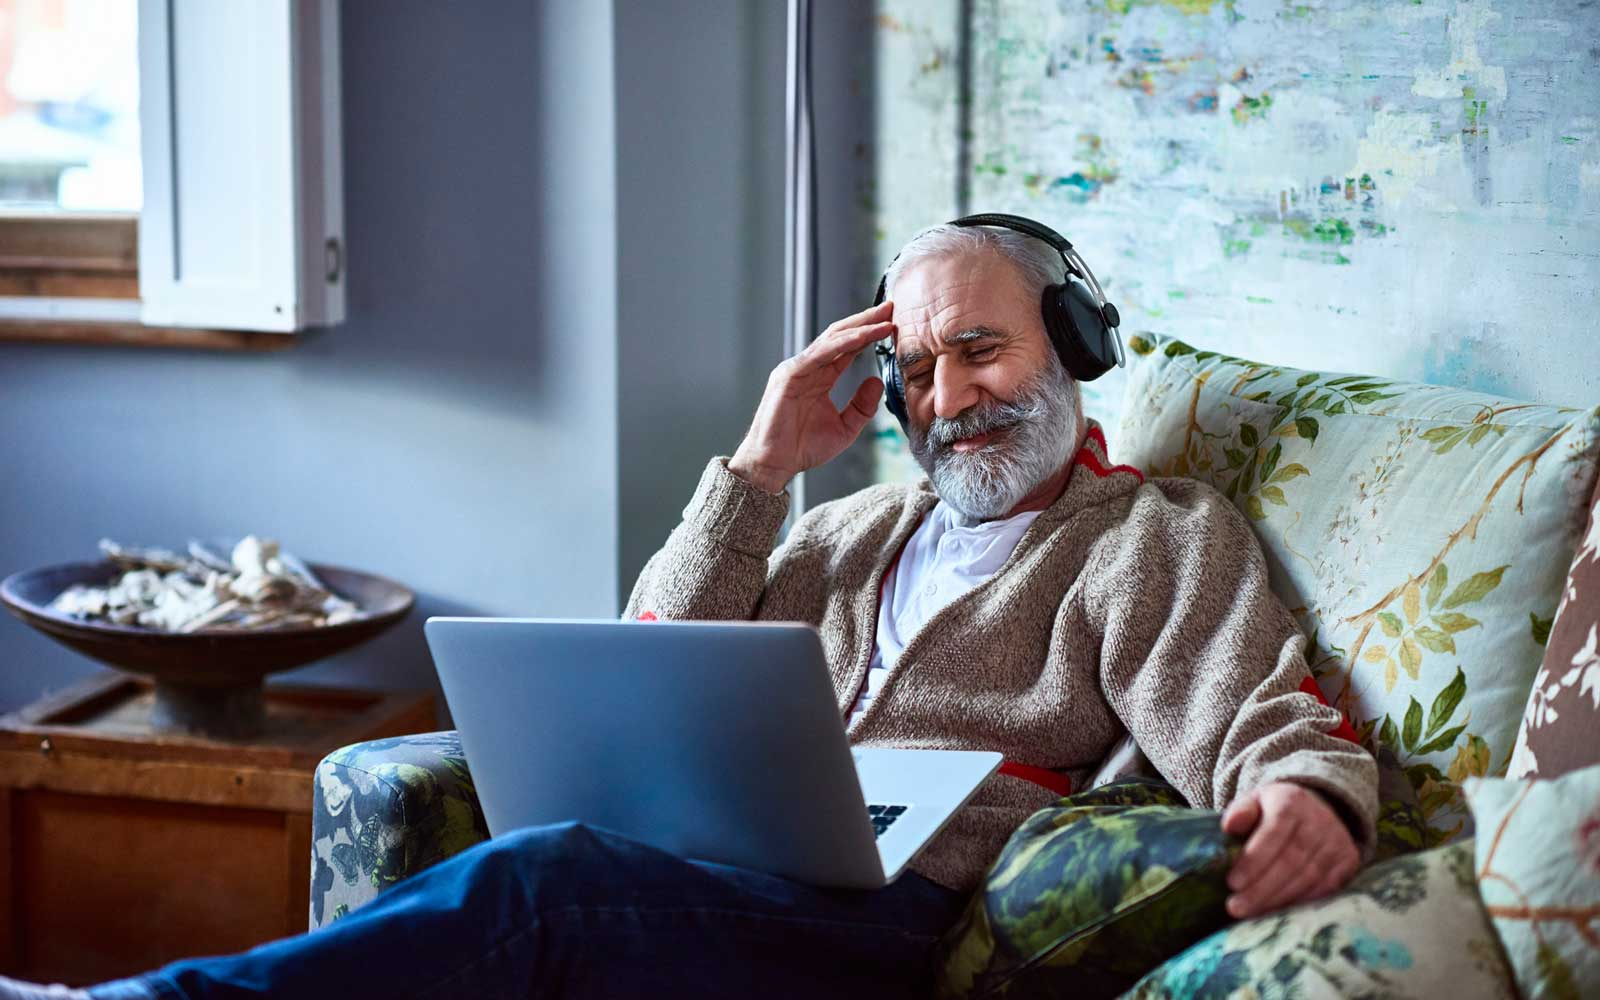 Cheerful man in his 50s watching a film on computer, smiling, sitting on comfortable sofa chair